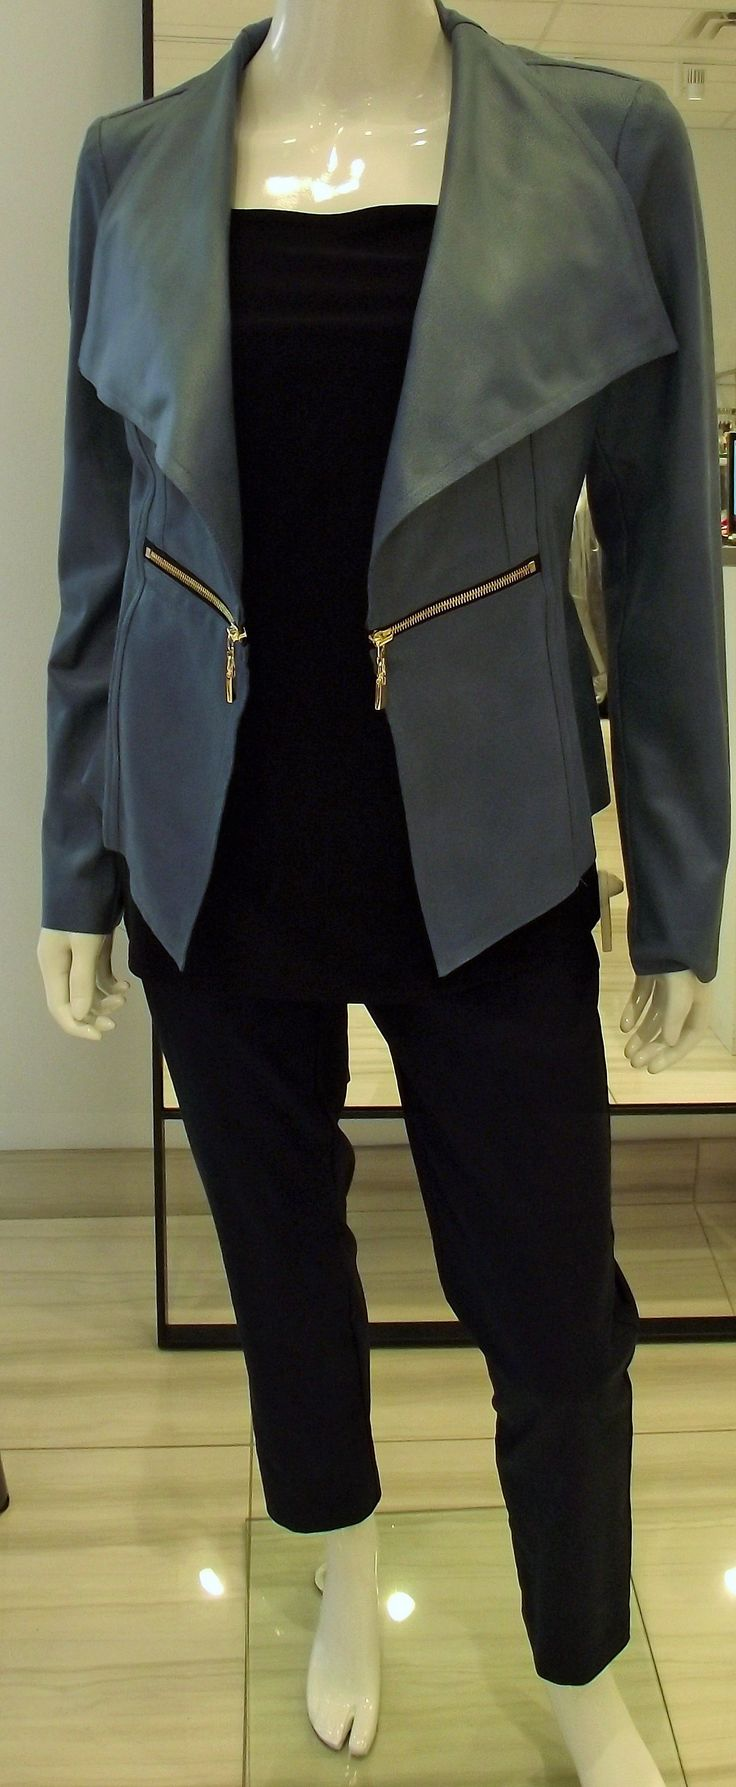 This blazer is a #musthave this summer and fall season. Comfortable soft pleather and flattering shape. Sold in black and blue #classicboutique #eastgwillimbury #pickeringtowncenter #classic #Summerlovin